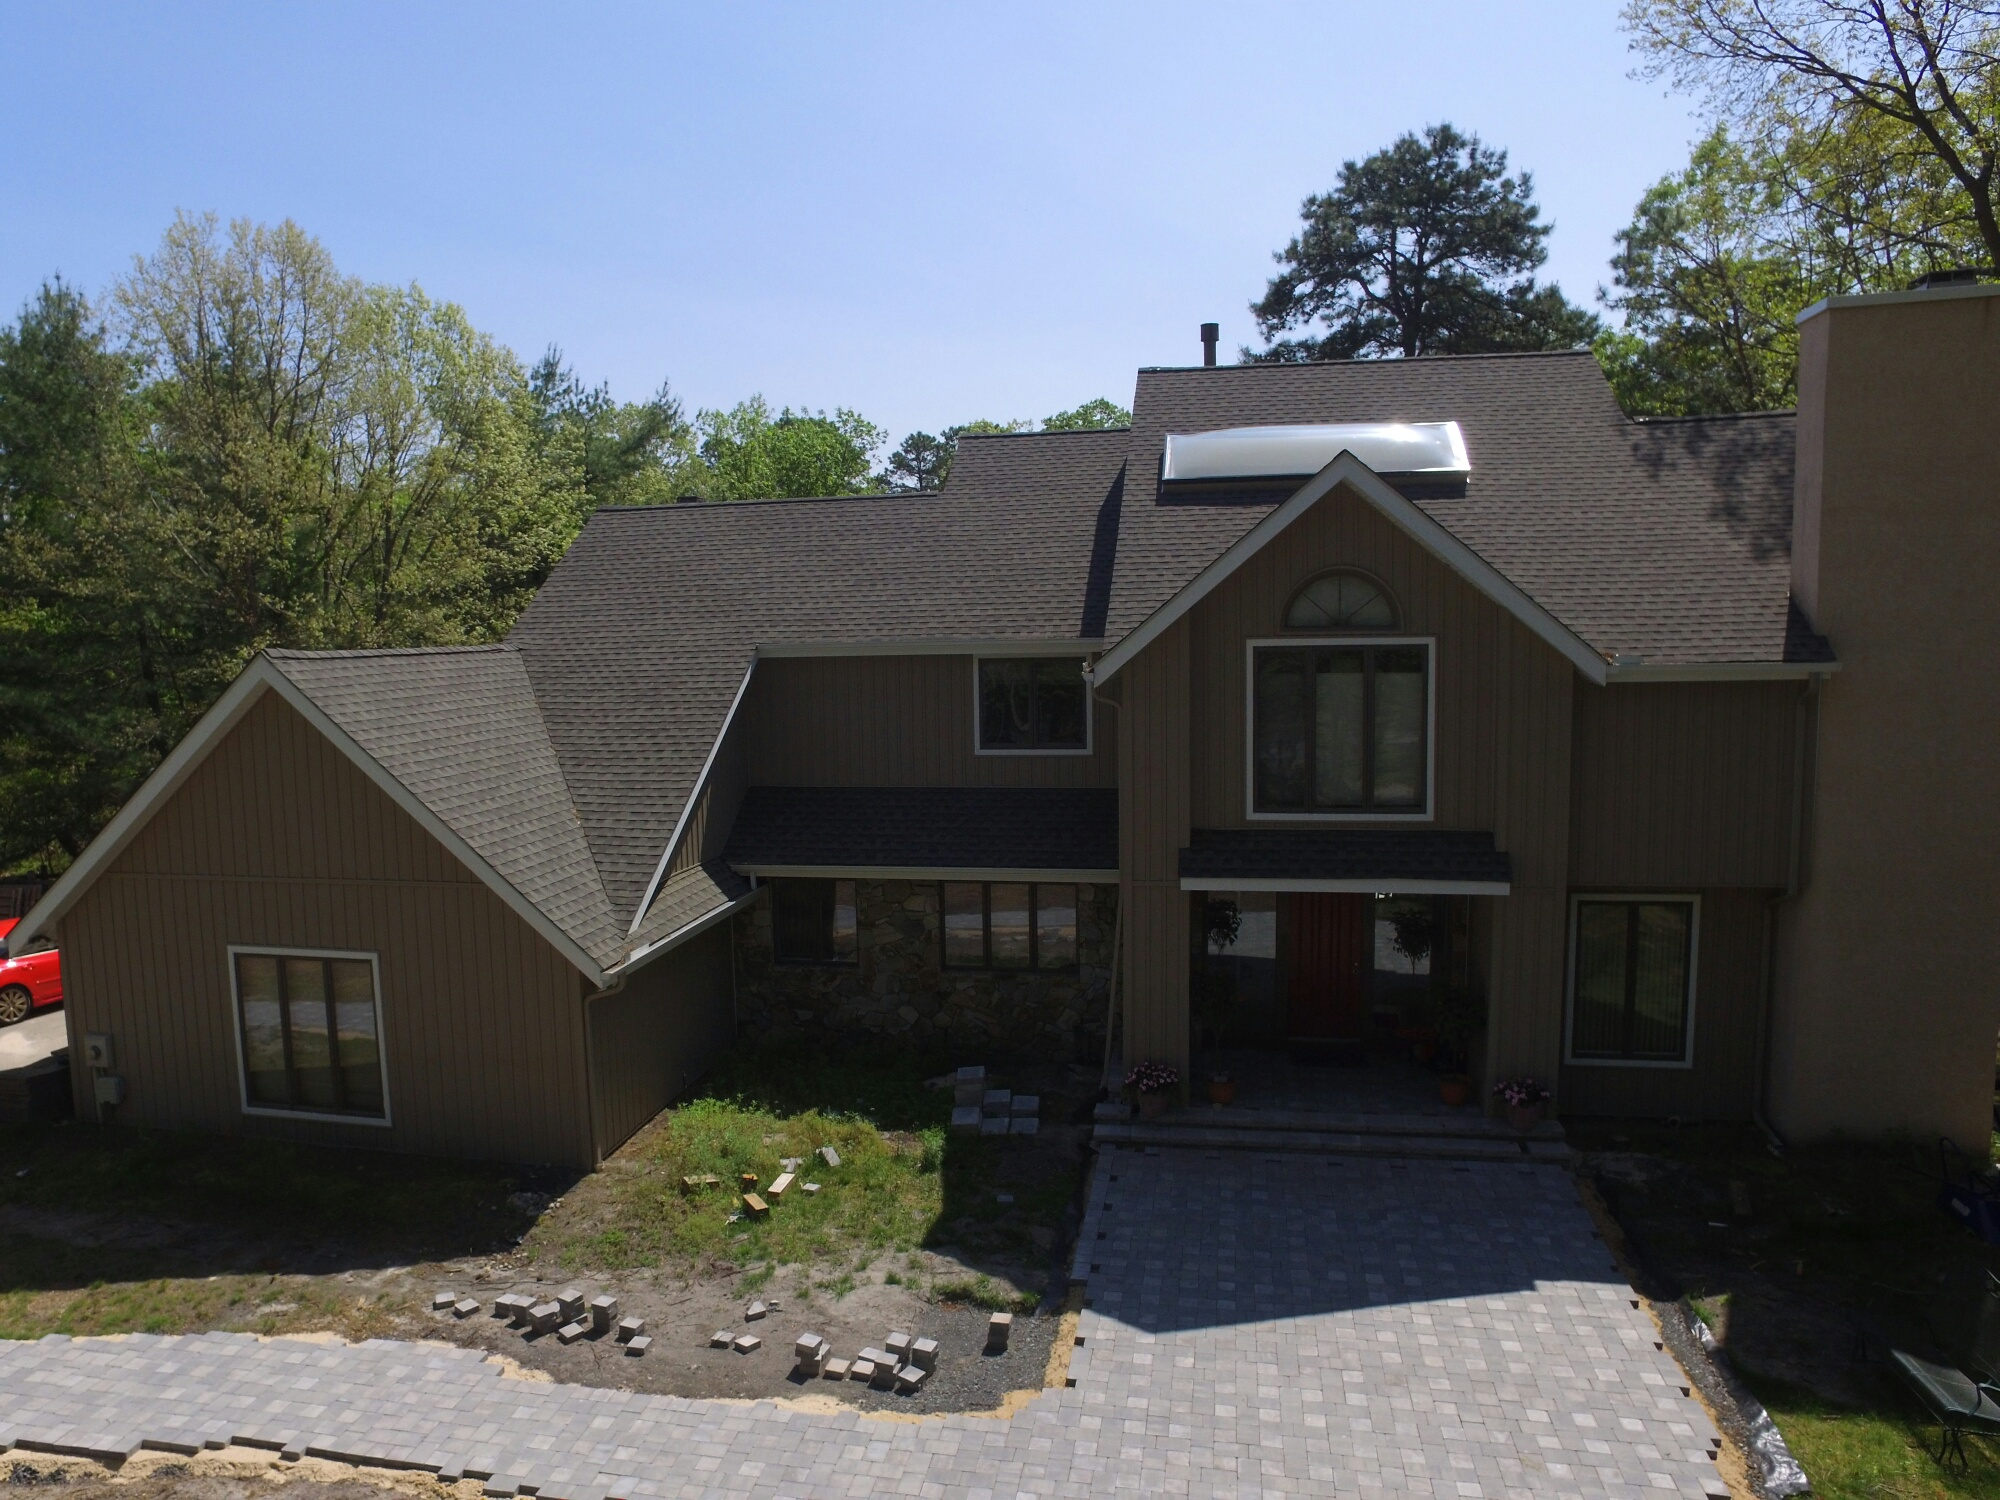 Gaf timberline hd lifetime roofing system with weathered for Gaf cement siding